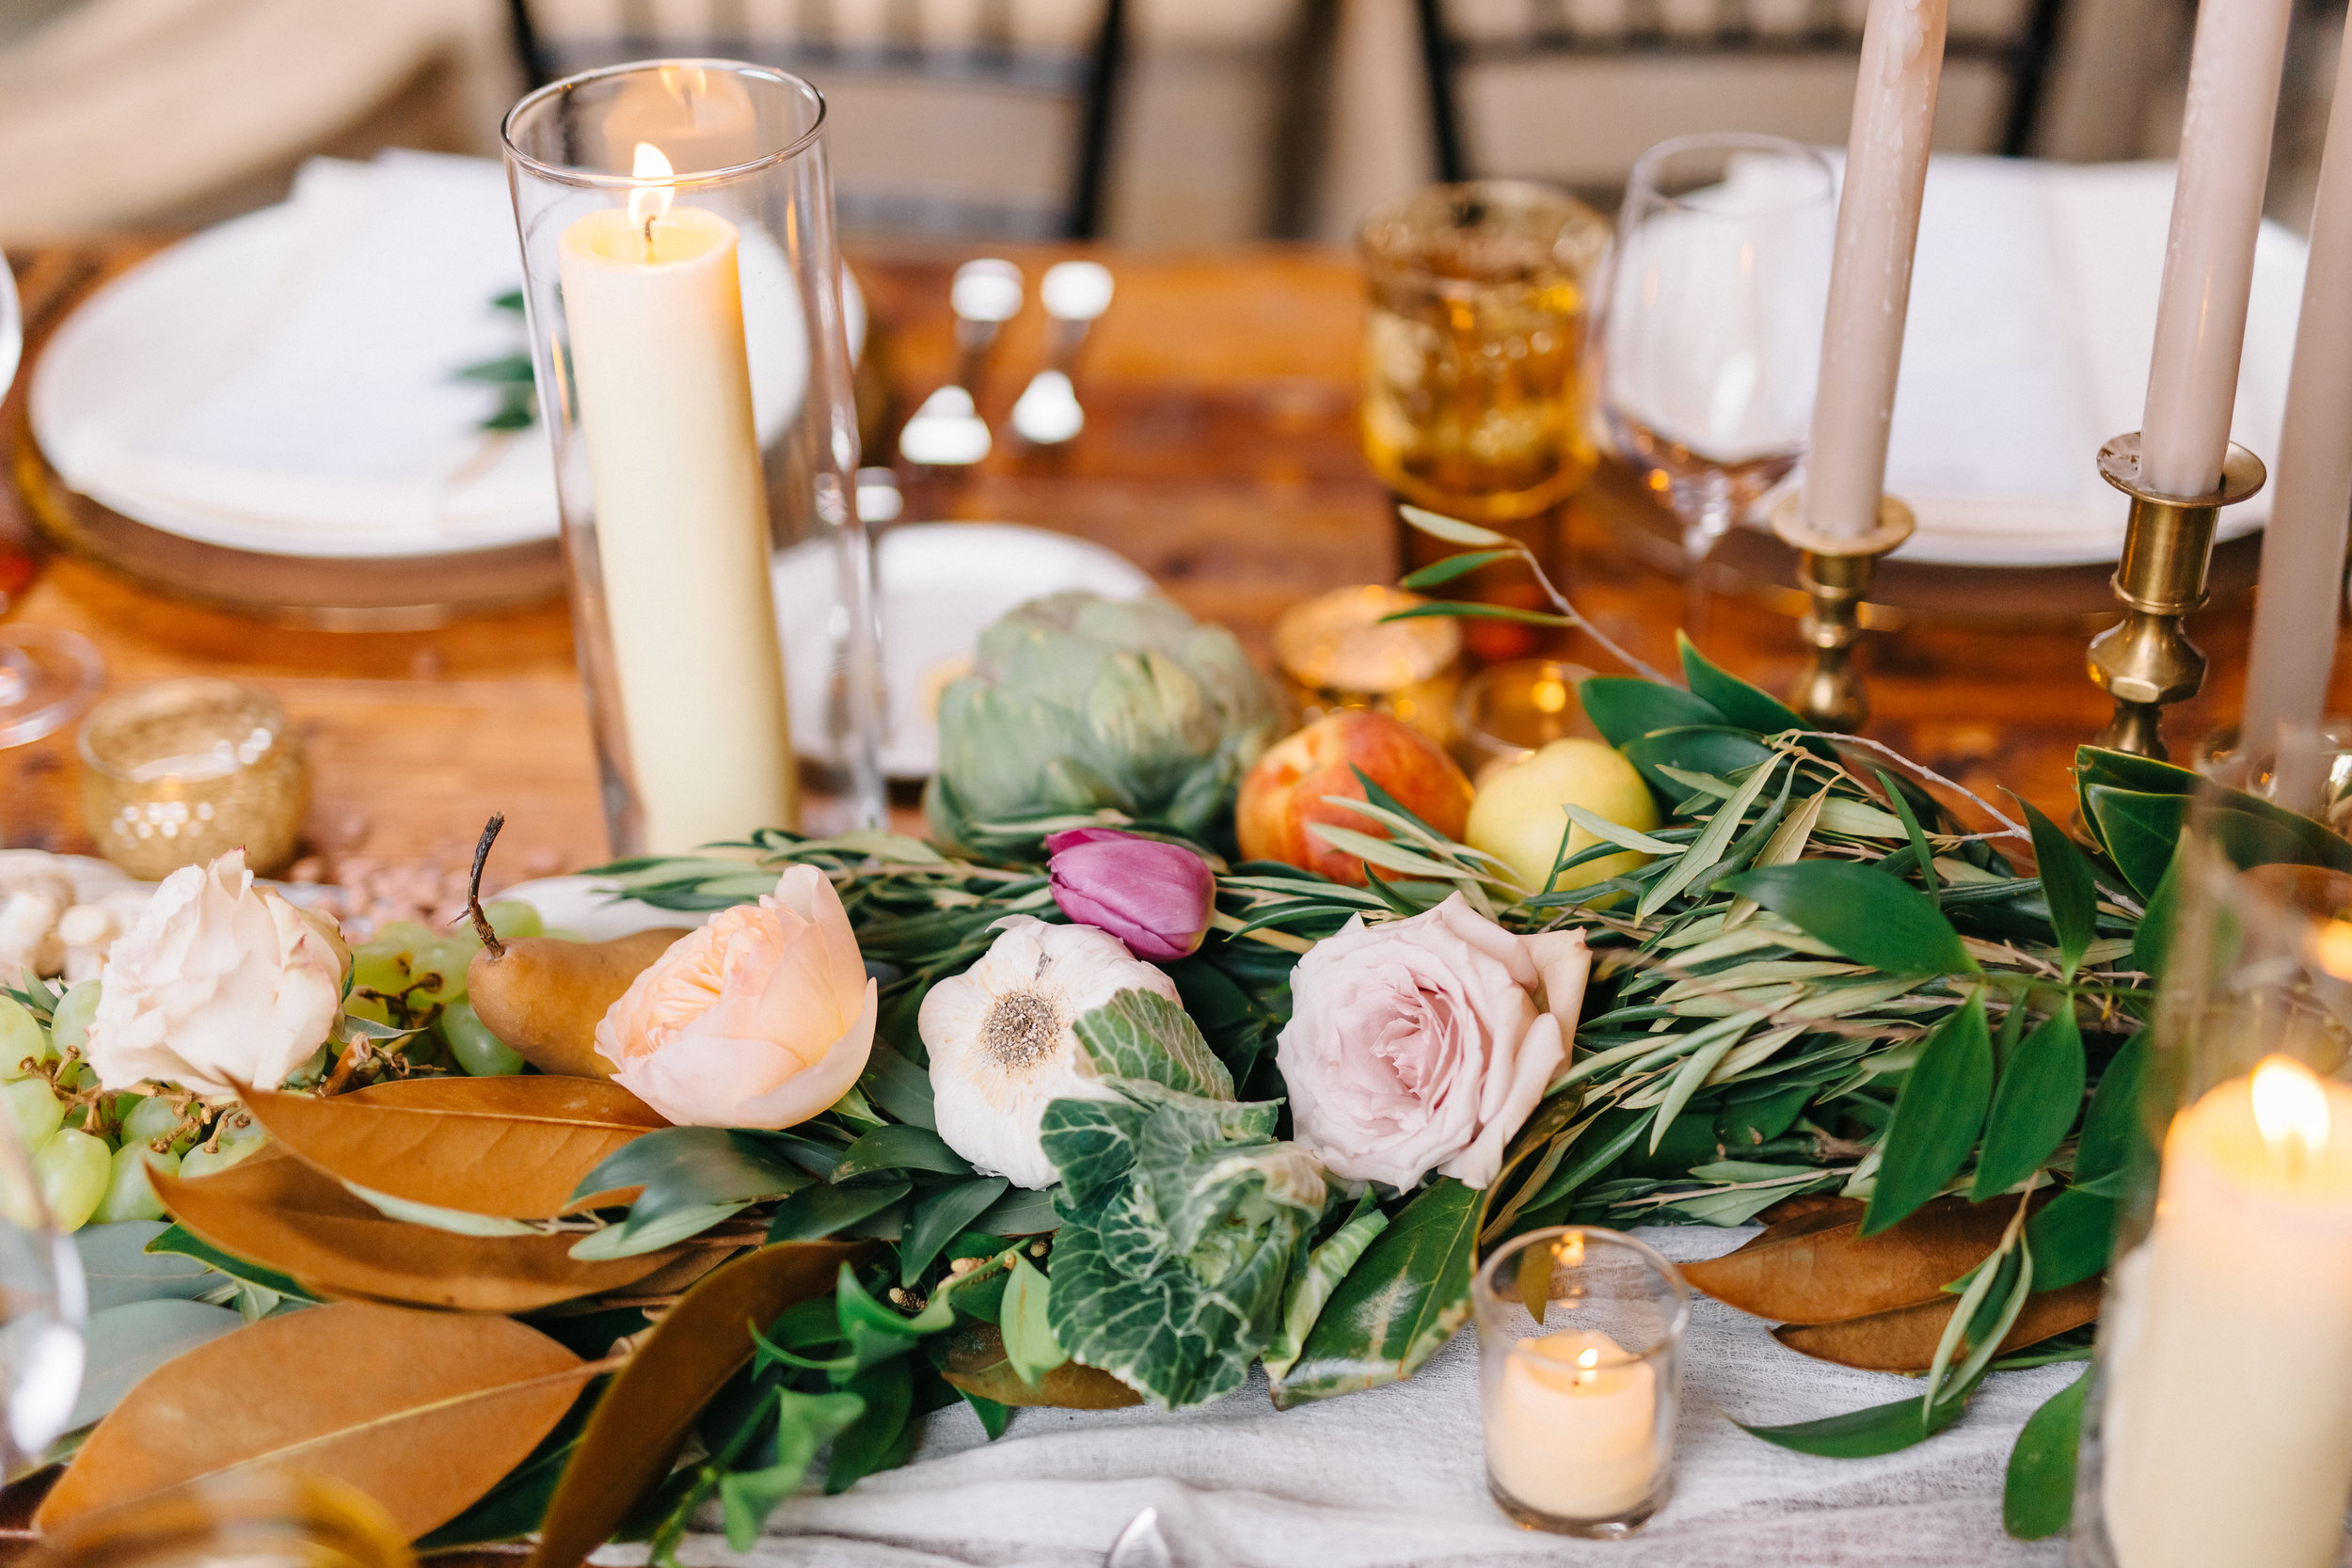 Candlelit tuscan inspired wedding reception with olive leaf and magnolia greenery  Orlando Wedding Planner Blue Ribbon Weddings  Orlando Wedding Photographer Emma Shourds Photography  Wedding Ceremony at Bell Tower at Bella Collina  Wedding Reception in Atrium at Bella Collina